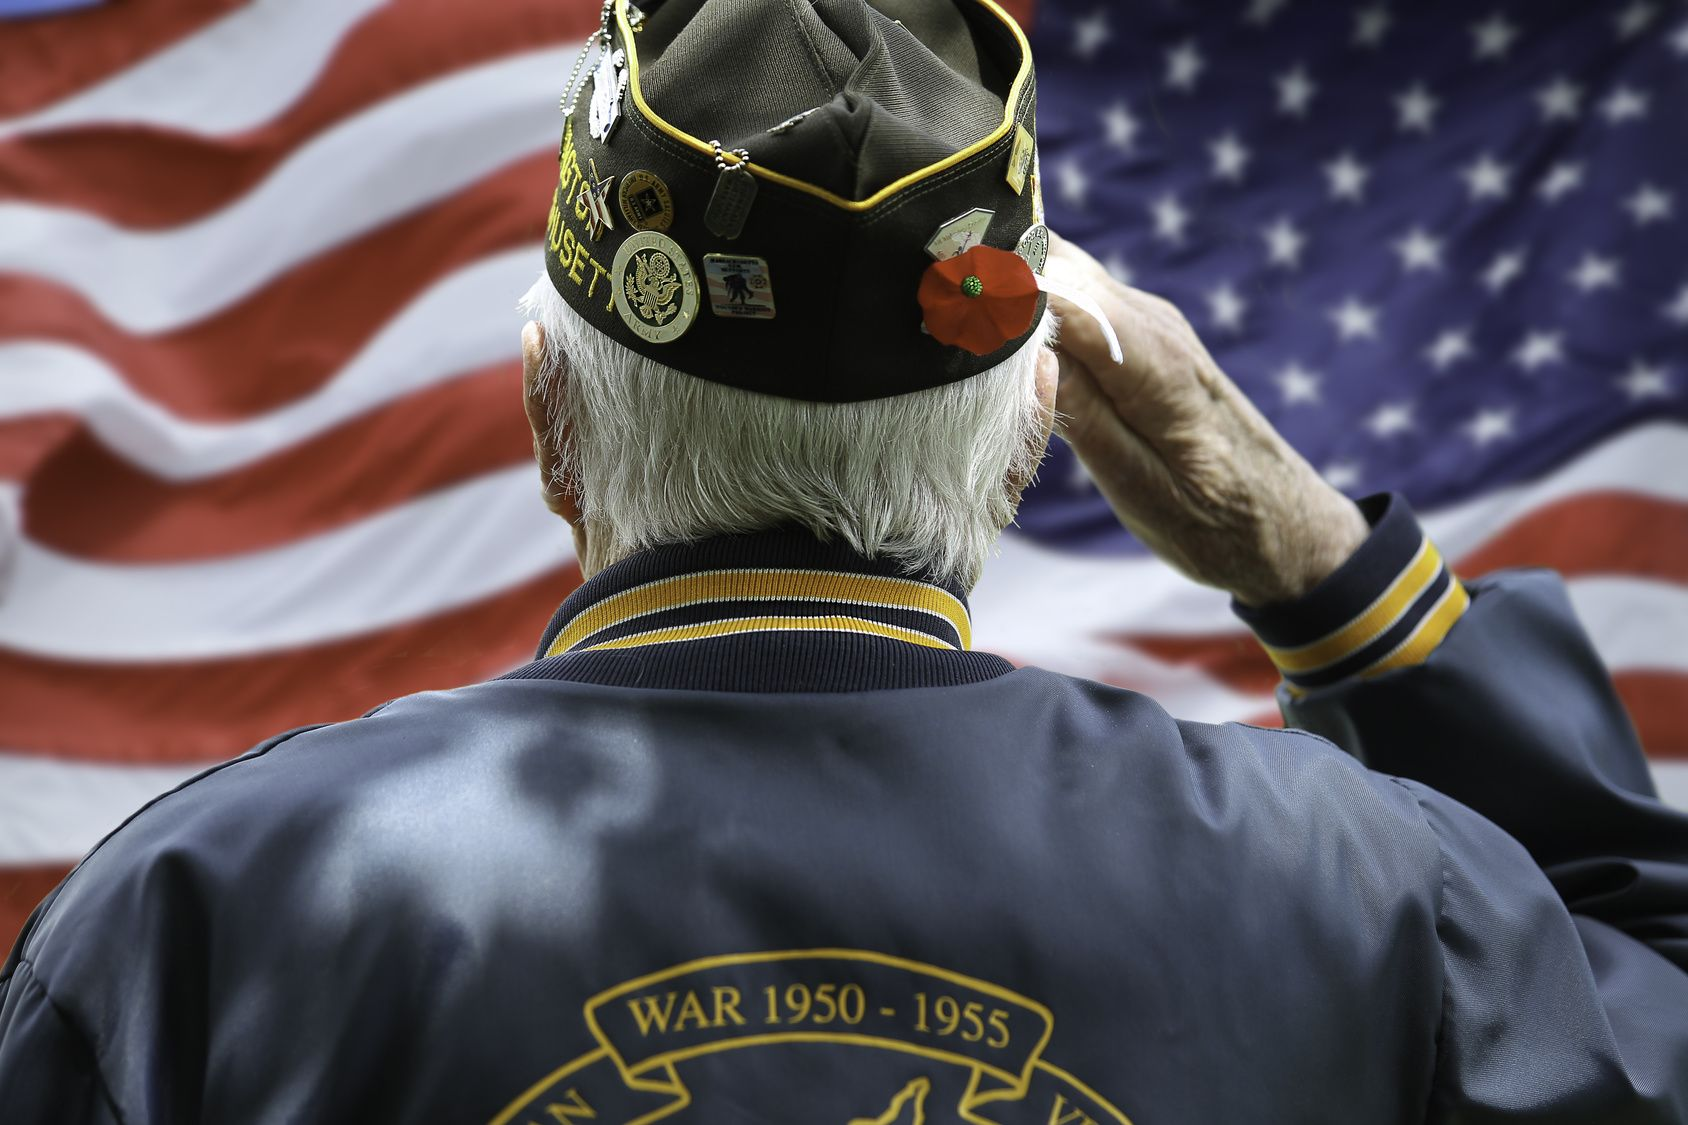 Today we thank those who served and sacrificed for our country. #VeteransDay http://hospiceofgrace.com  Questions, Call (818) 452-3737